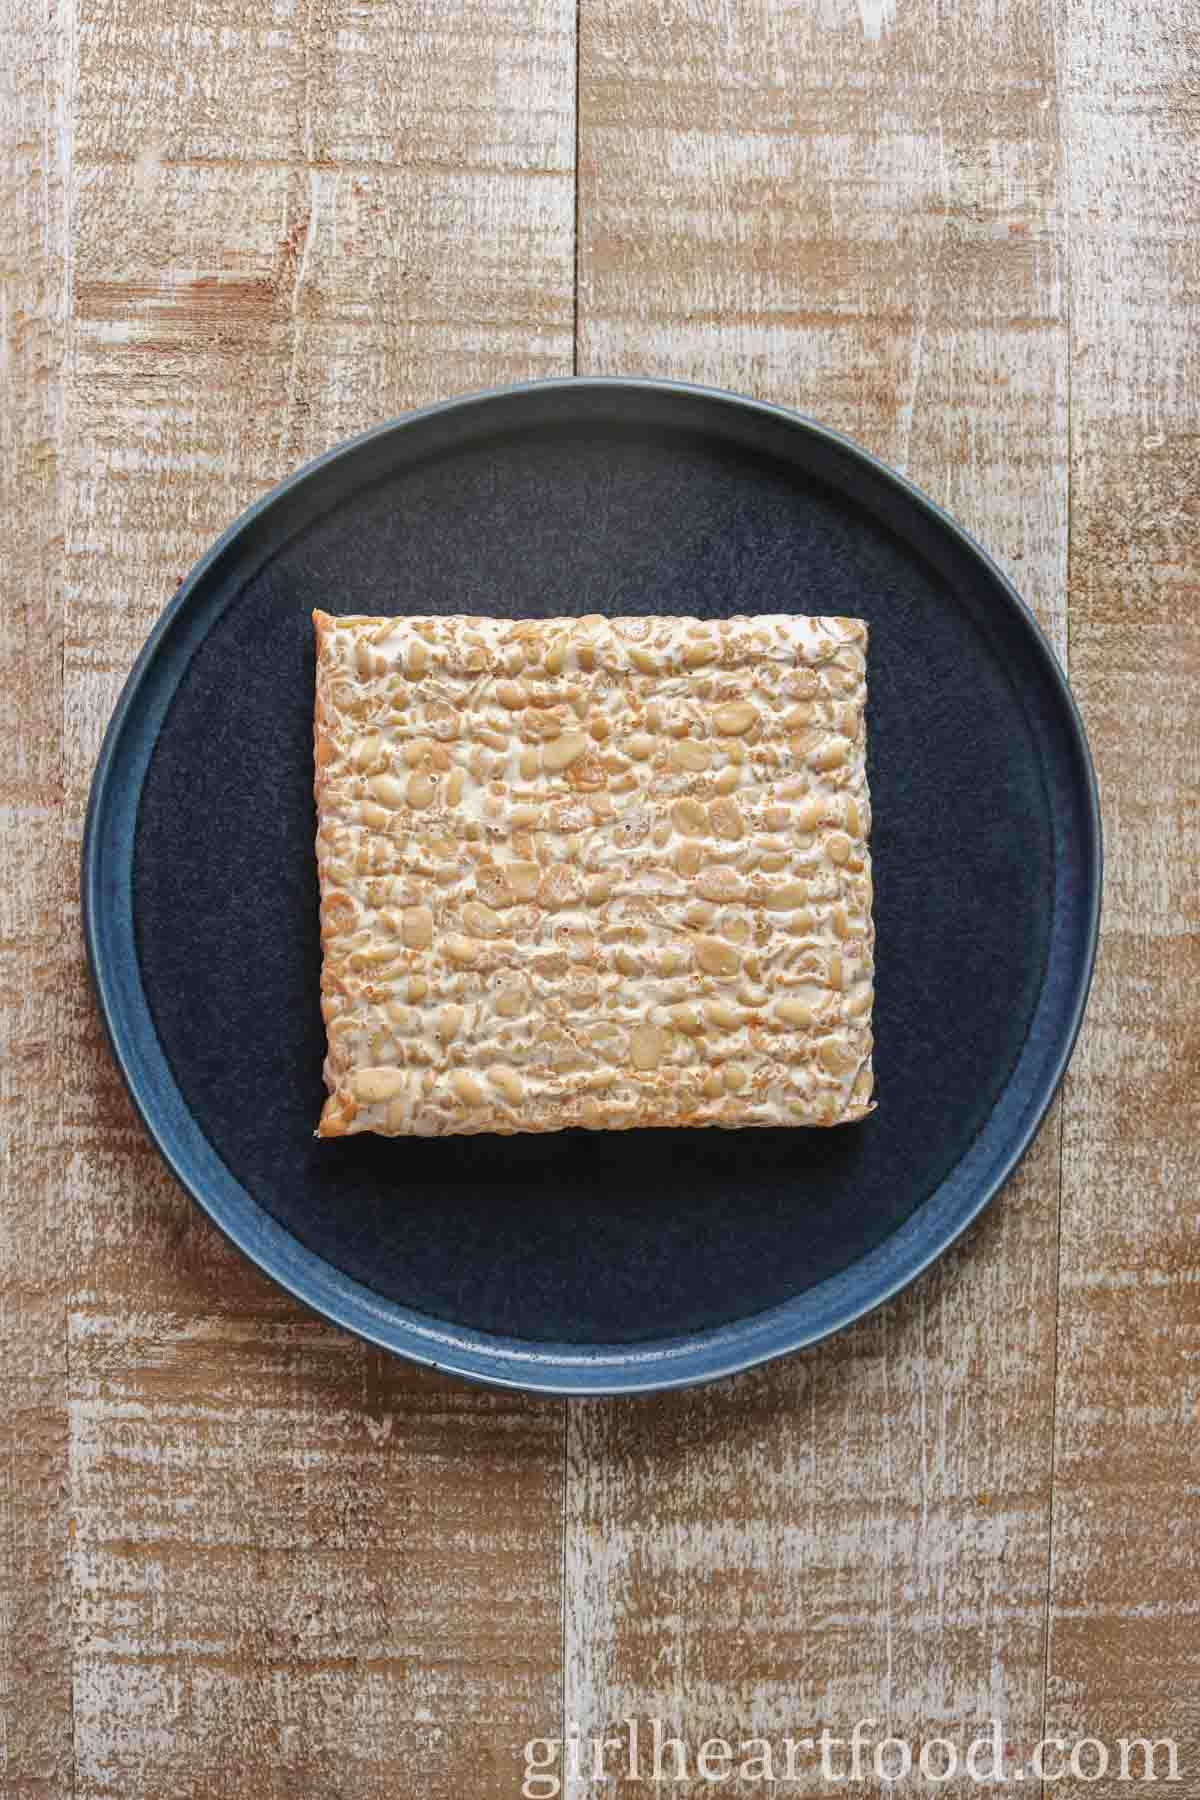 Block of uncooked tempeh on a dark blue plate.